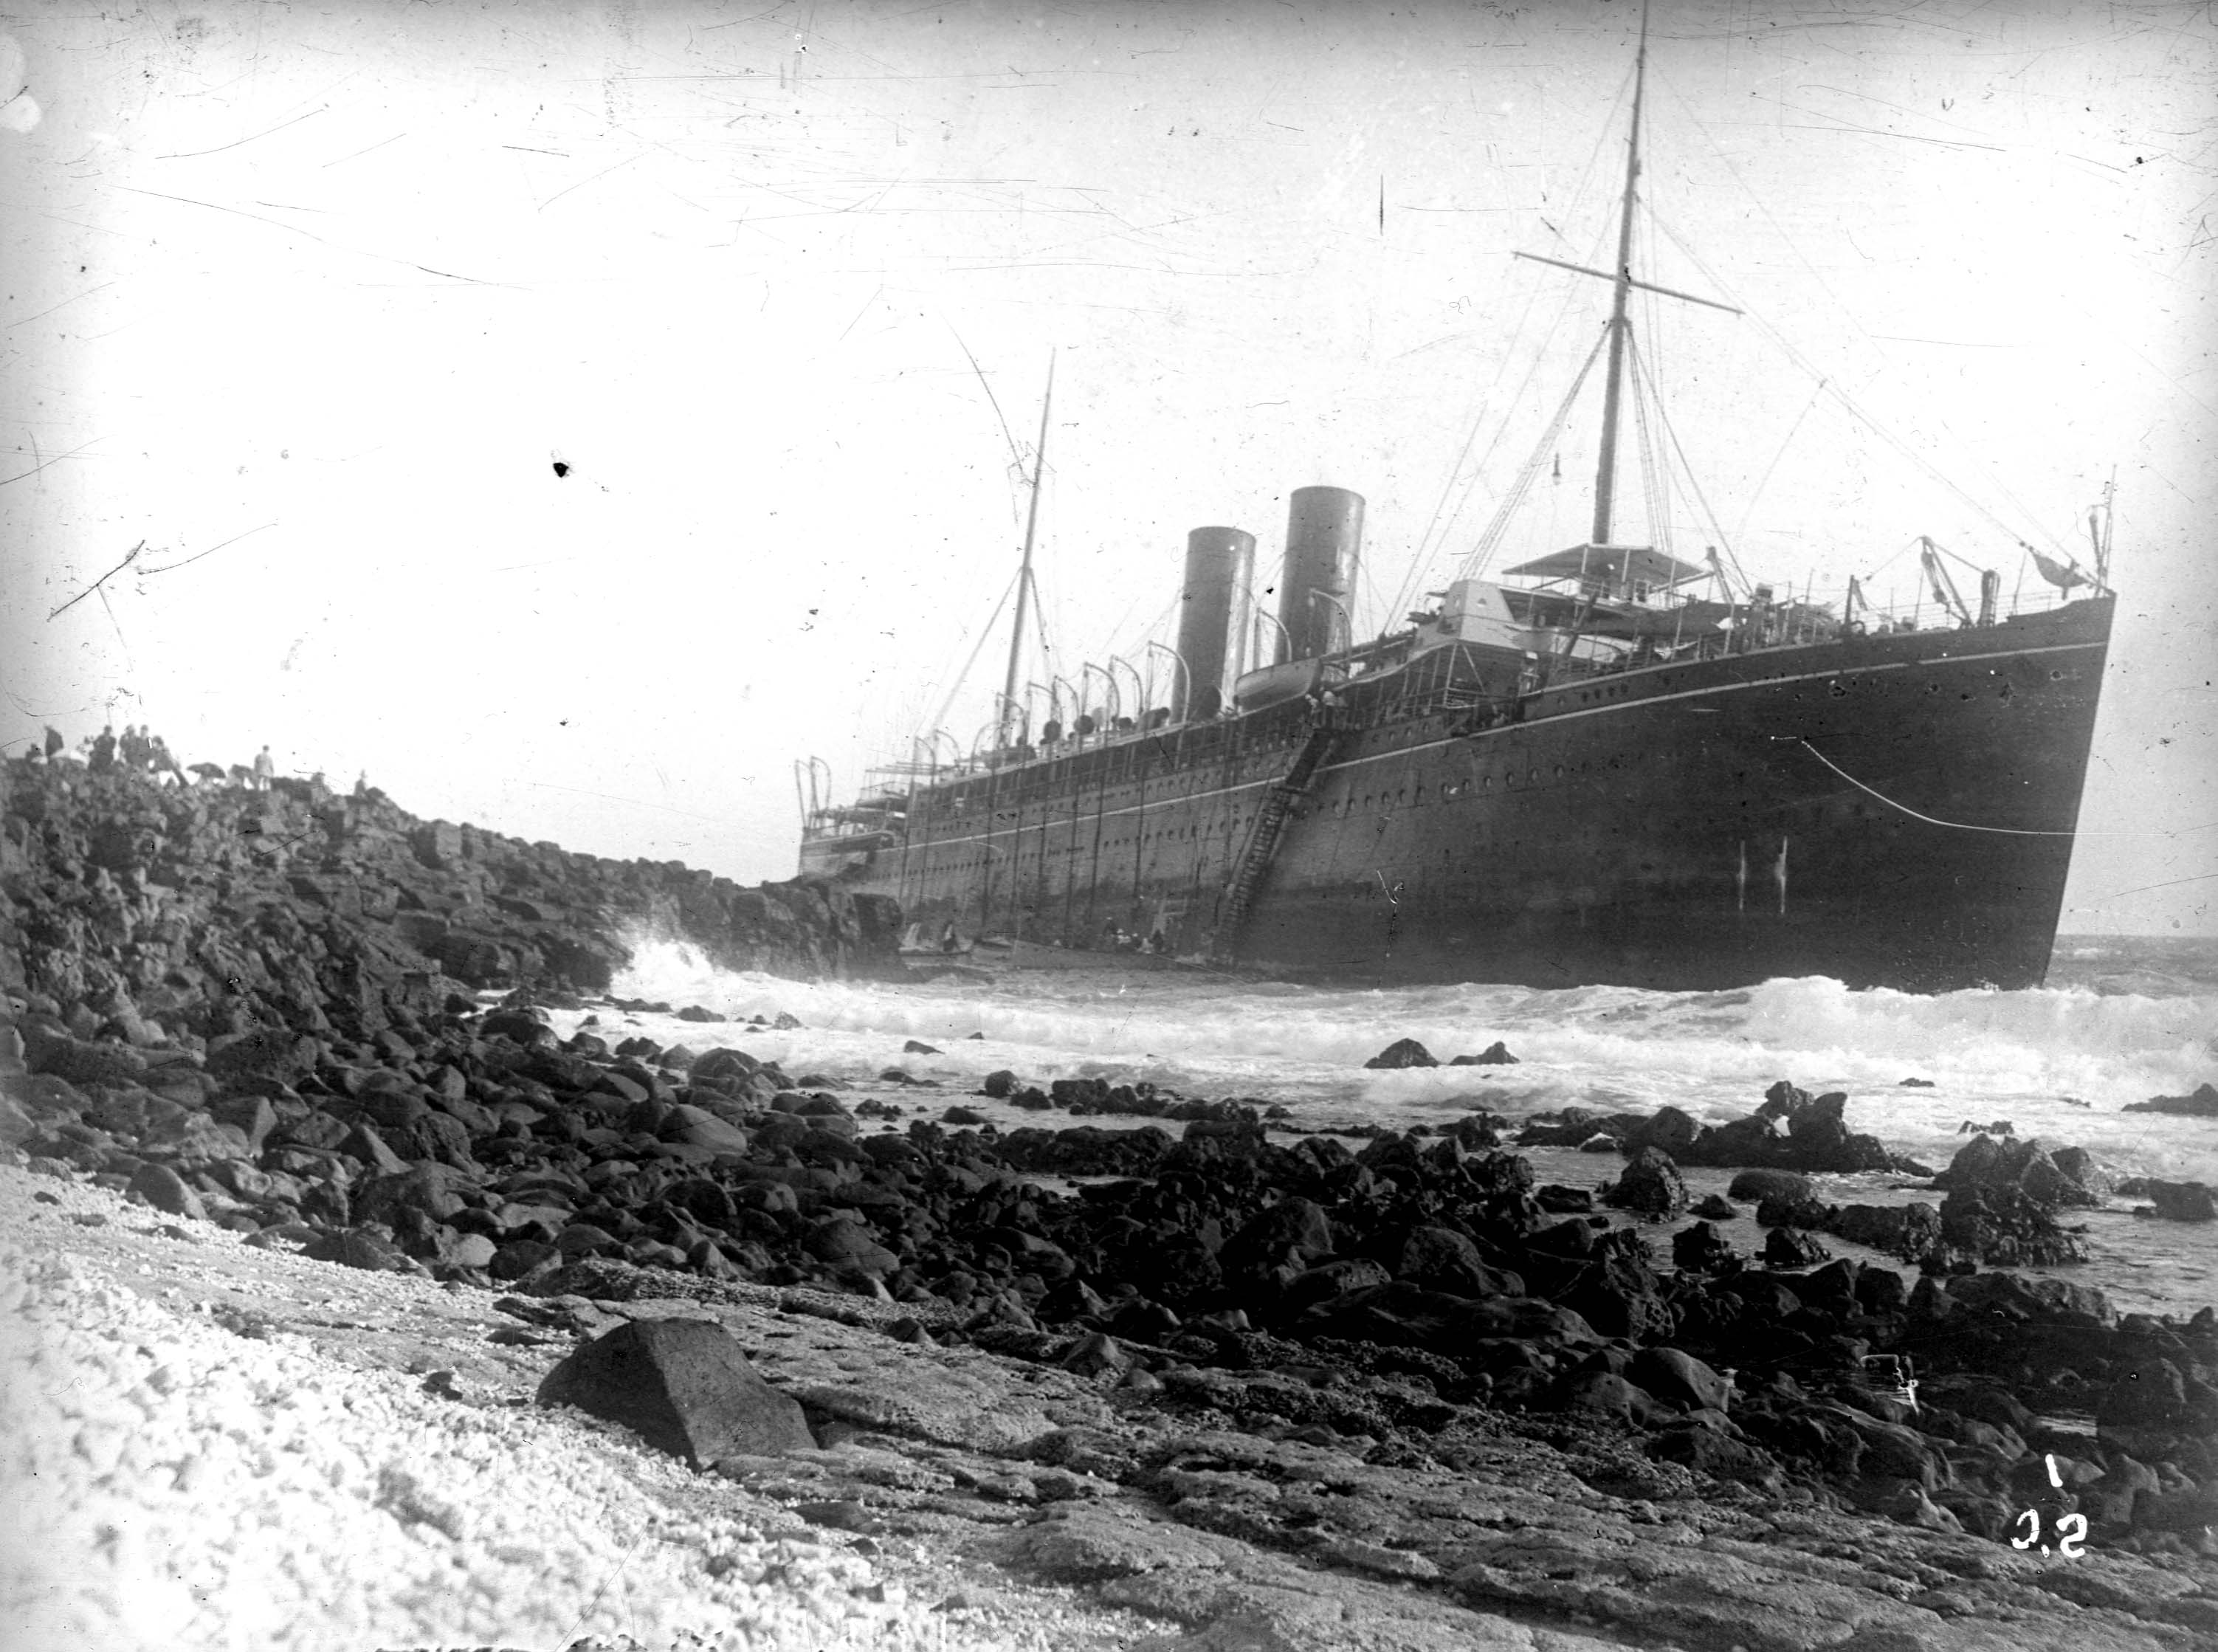 A twin funnel passenger ship aground on a rock covered beach